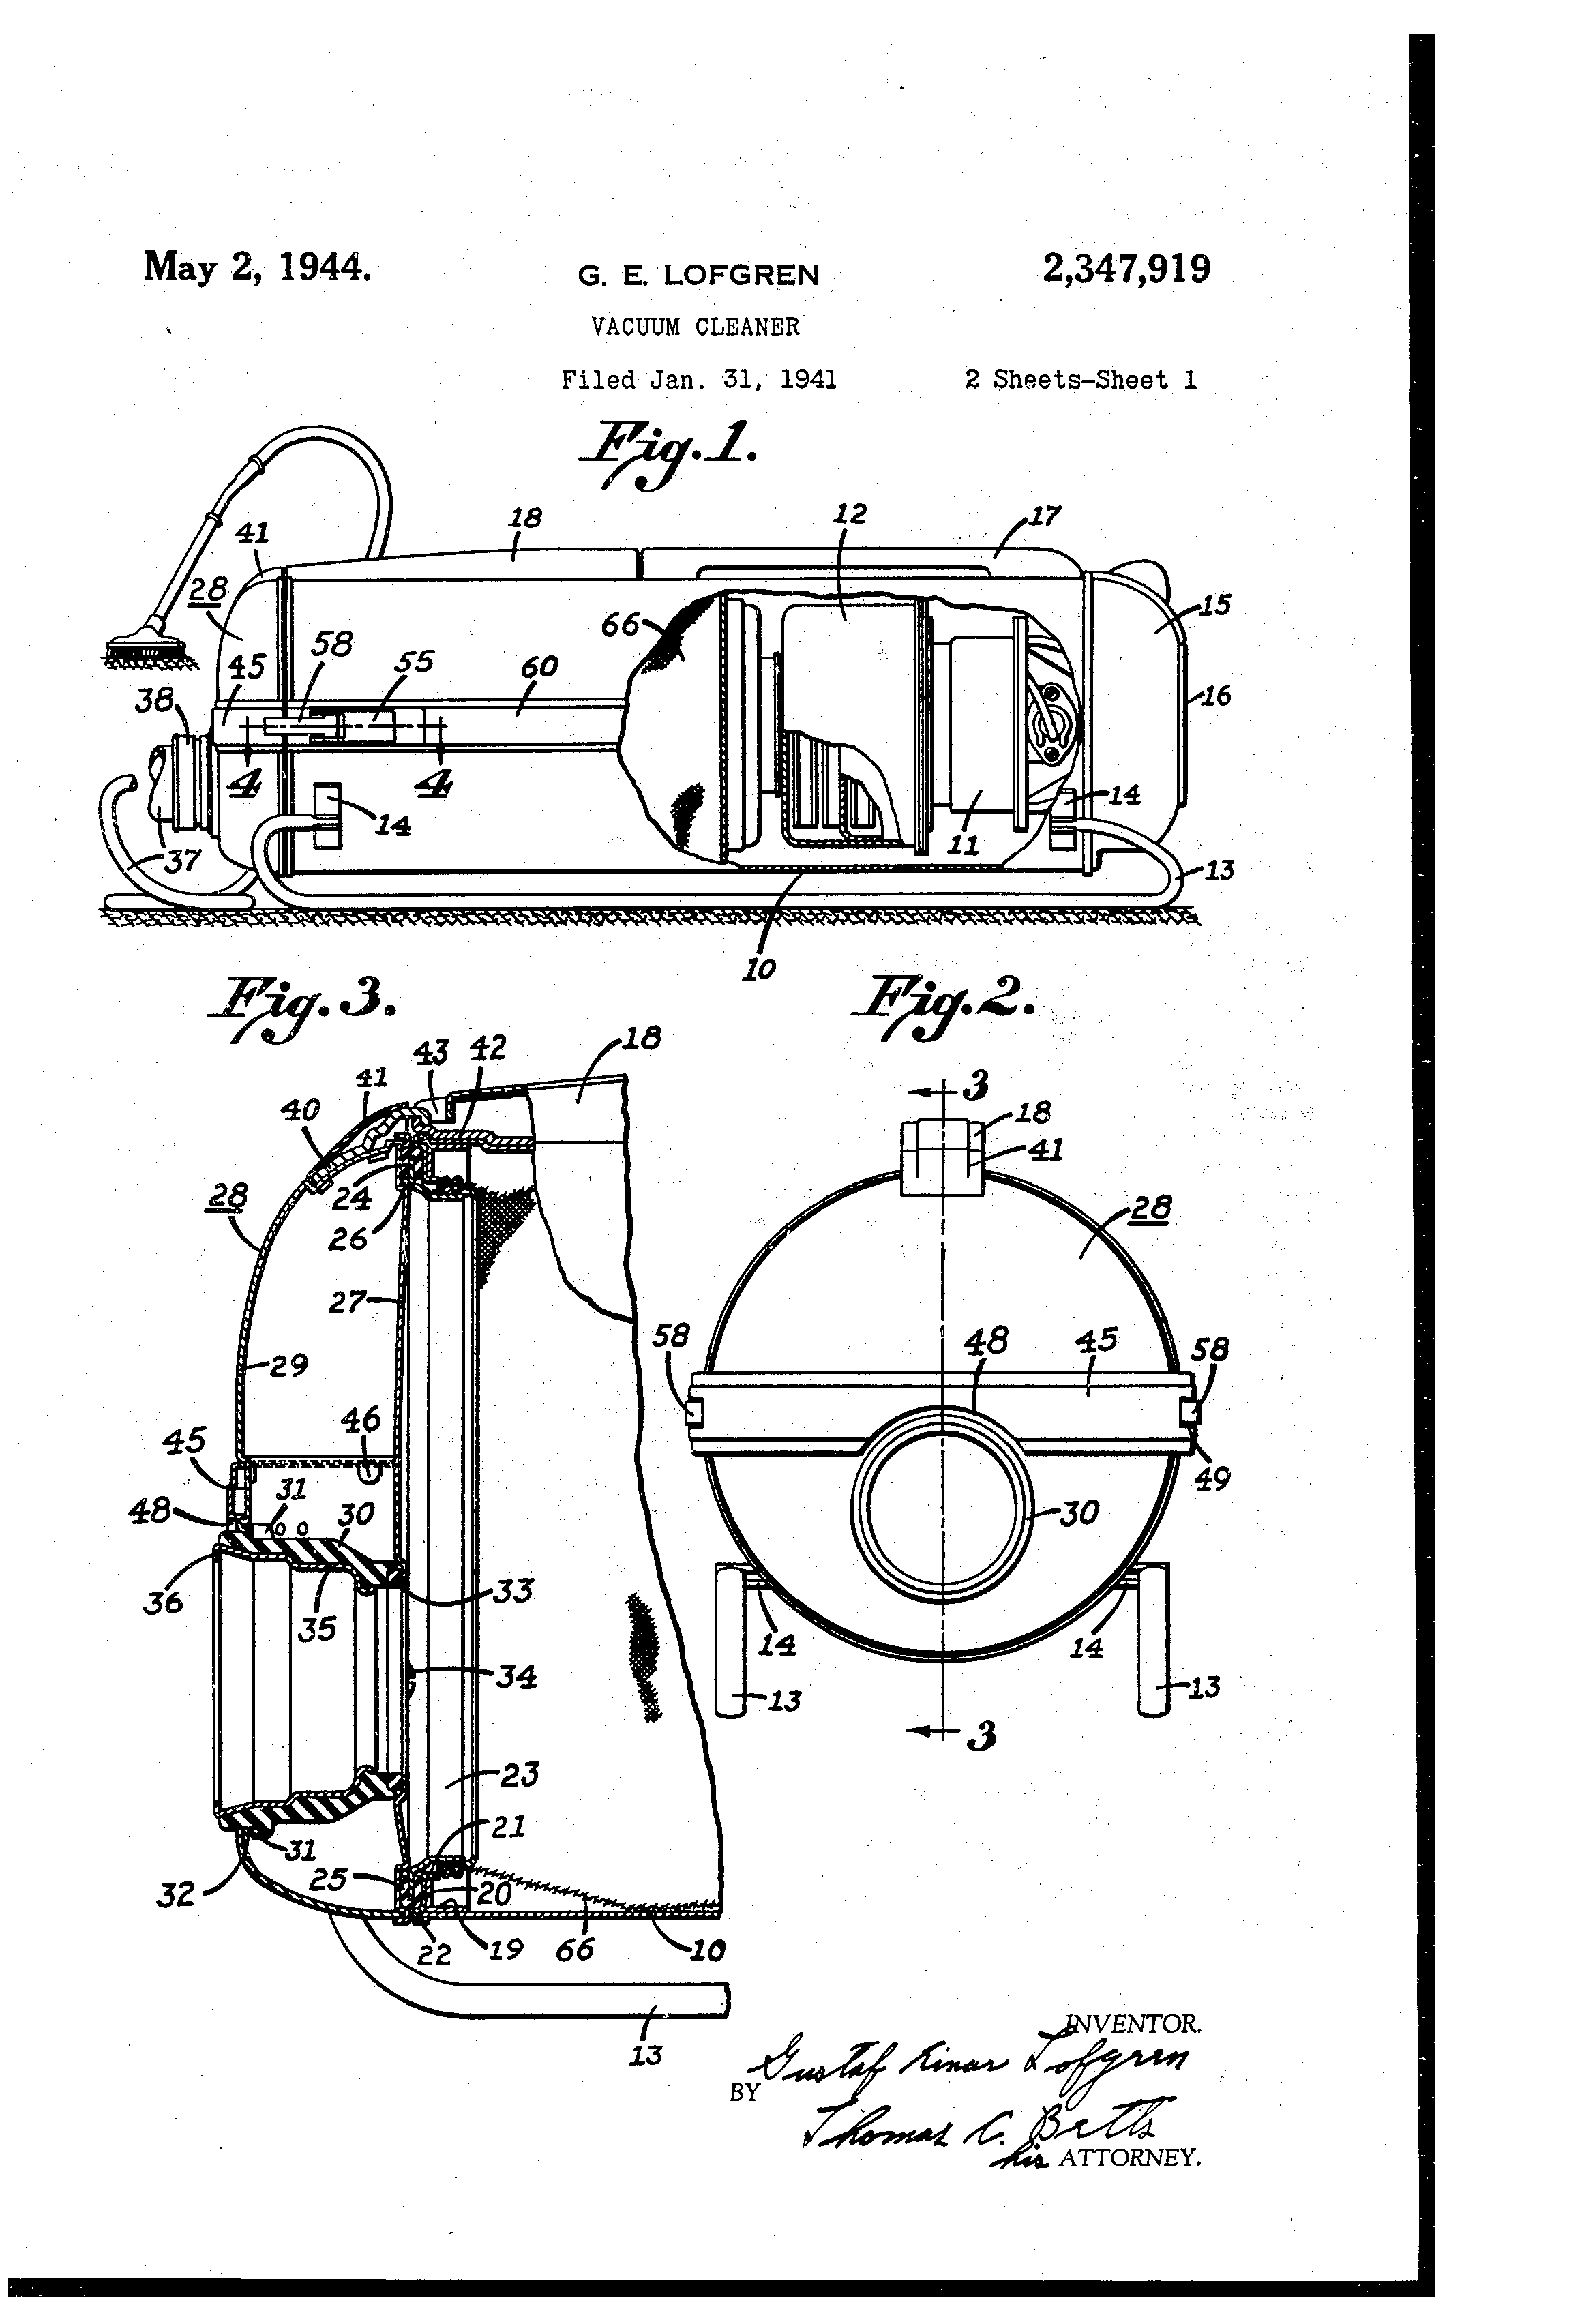 Cutaway Diagram Vacuum Cleaners Schematic Diagrams Kirby G6 Wiring Patent Us2347919 Cleaner Google Patents Sabre Saw